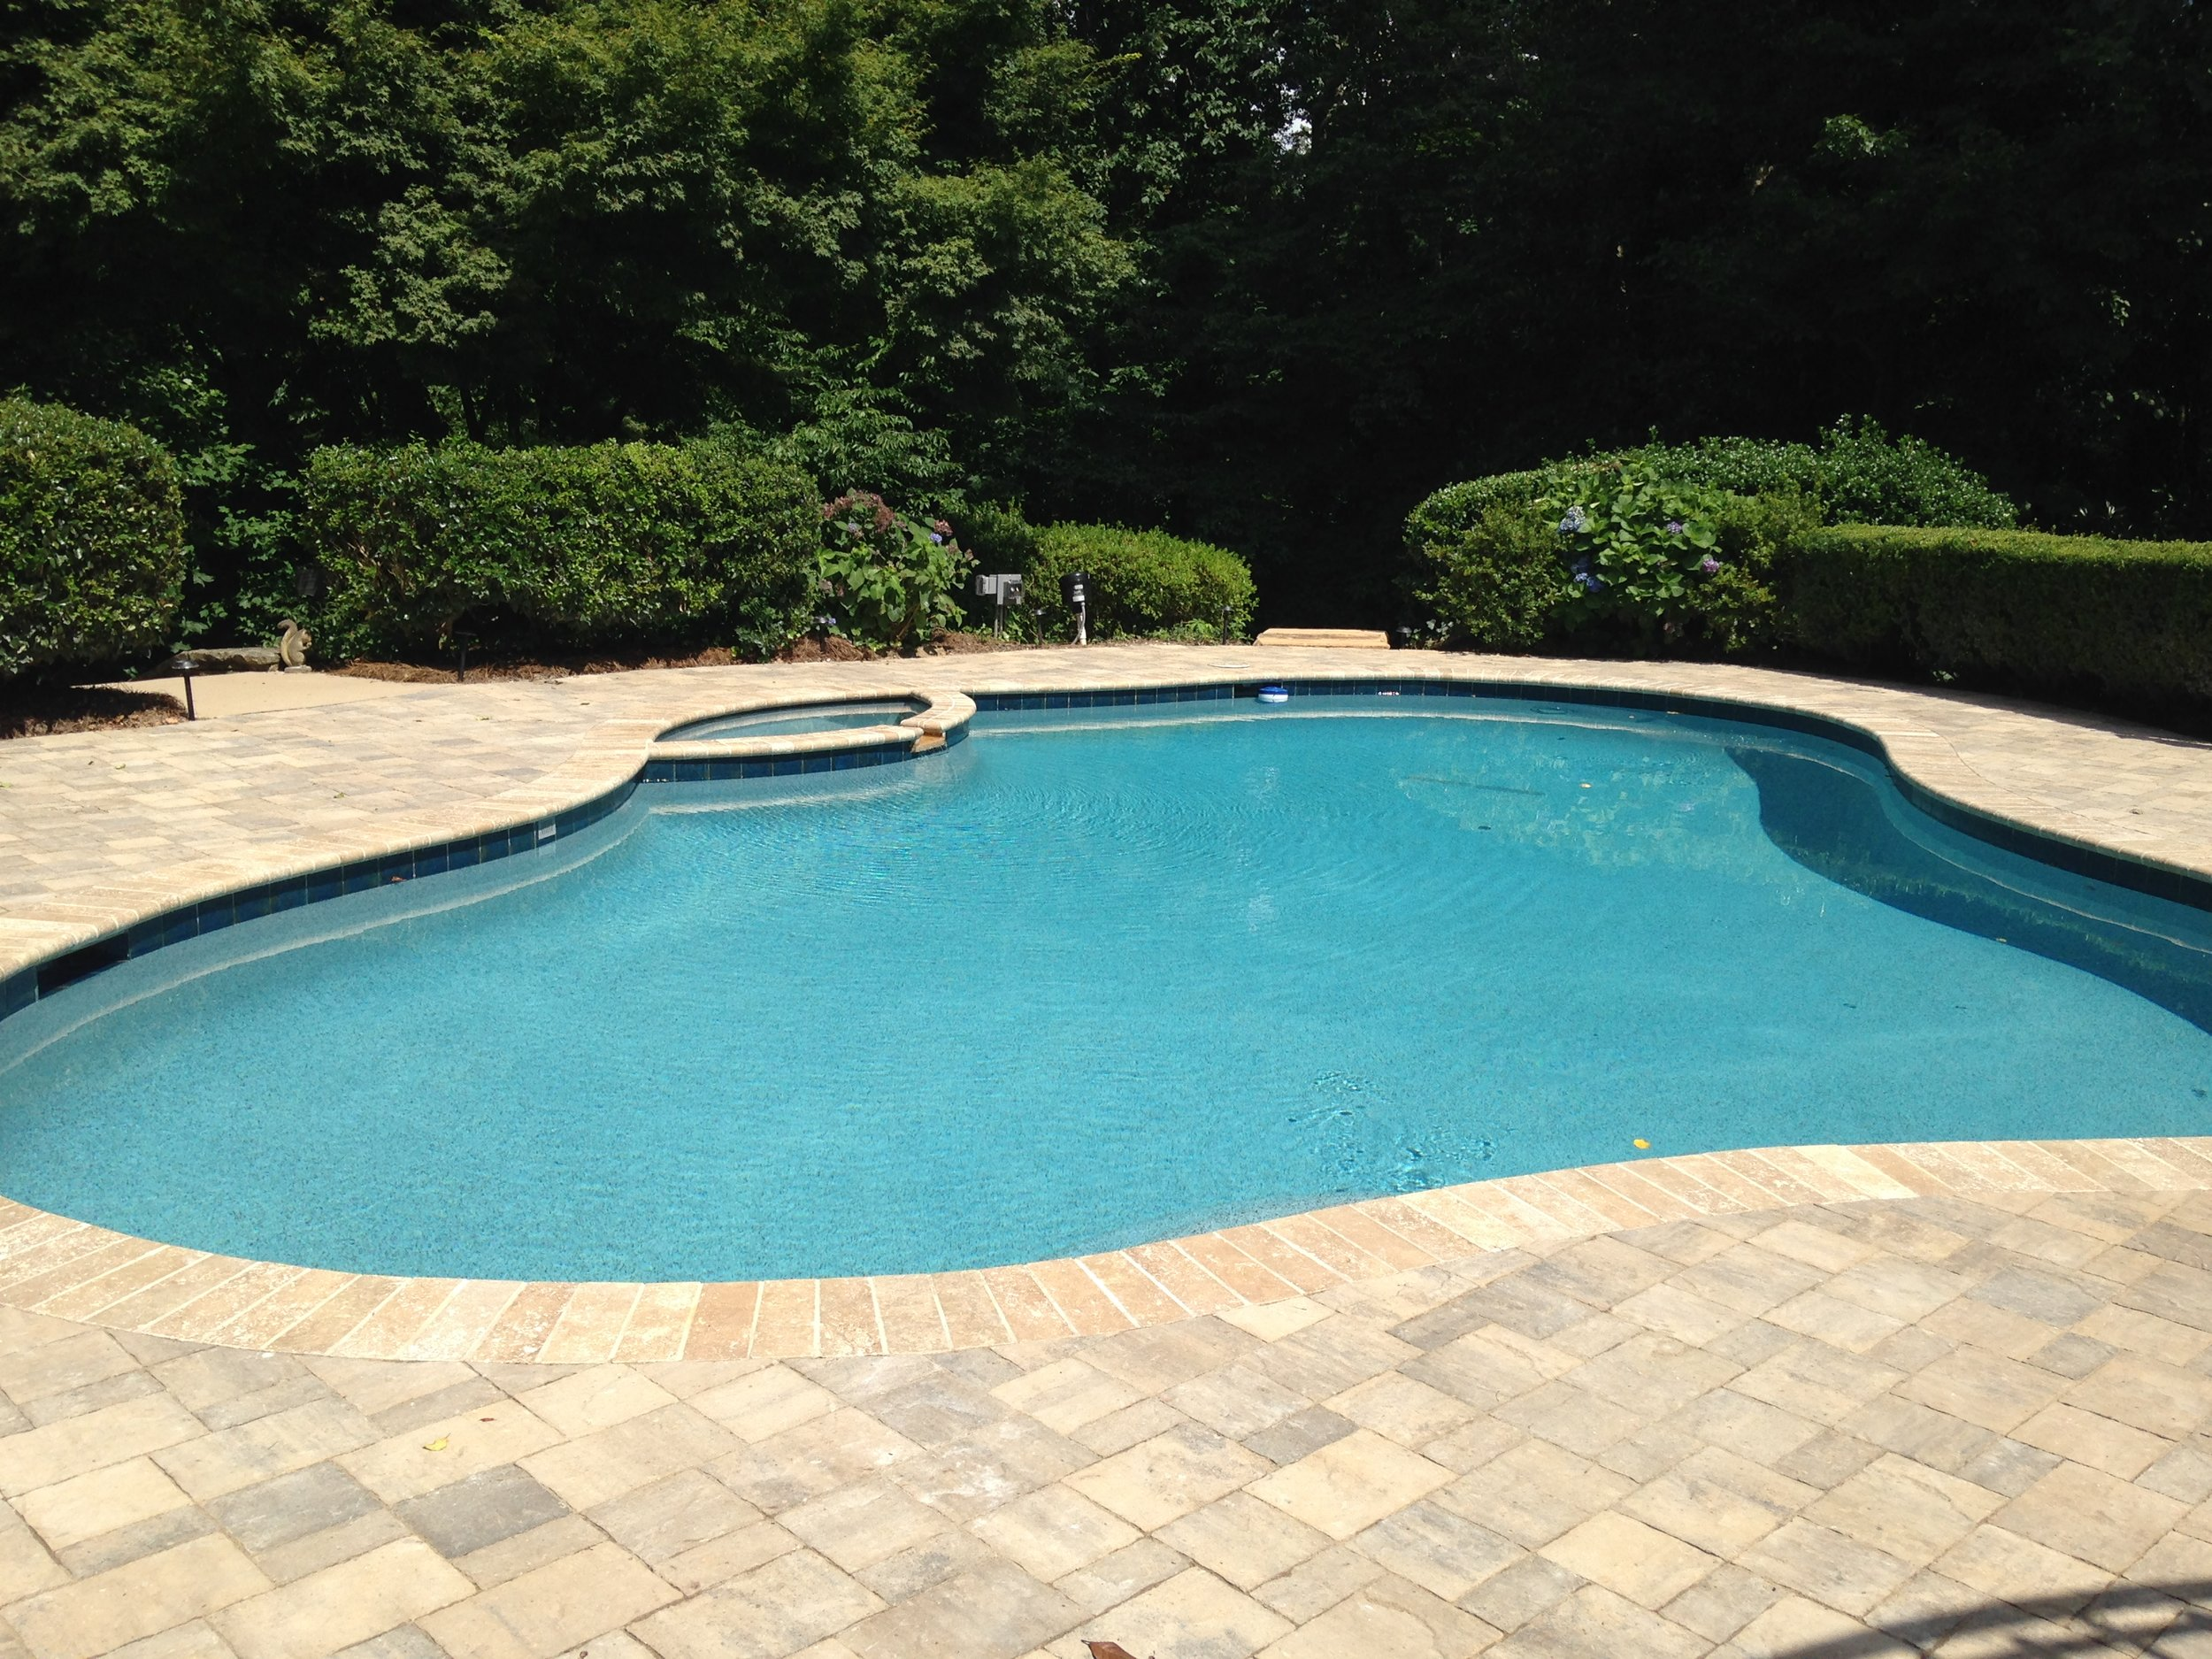 Lafitt pavers and noce travertine.jpg